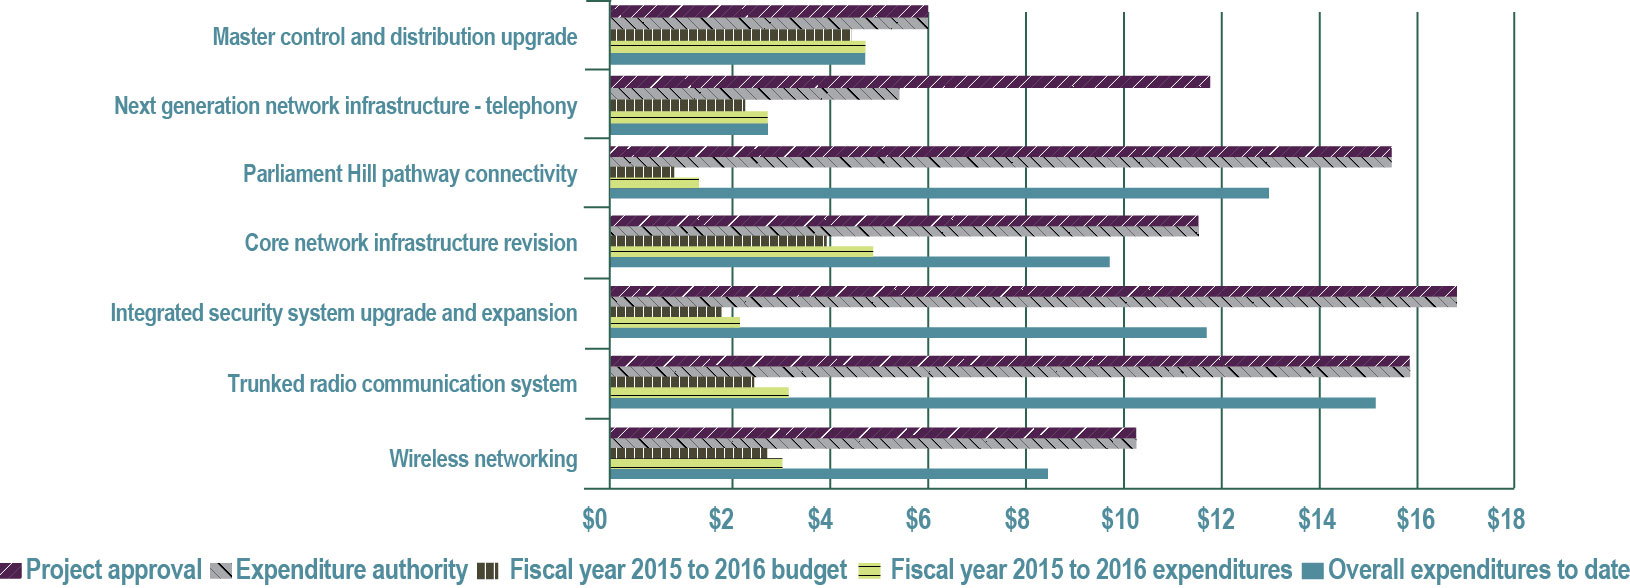 Figure 27—Building Components and Connectivity program project spending—Fiscal year 2015 to 2016 (in millions of dollars) and delivery timelines - See description below.